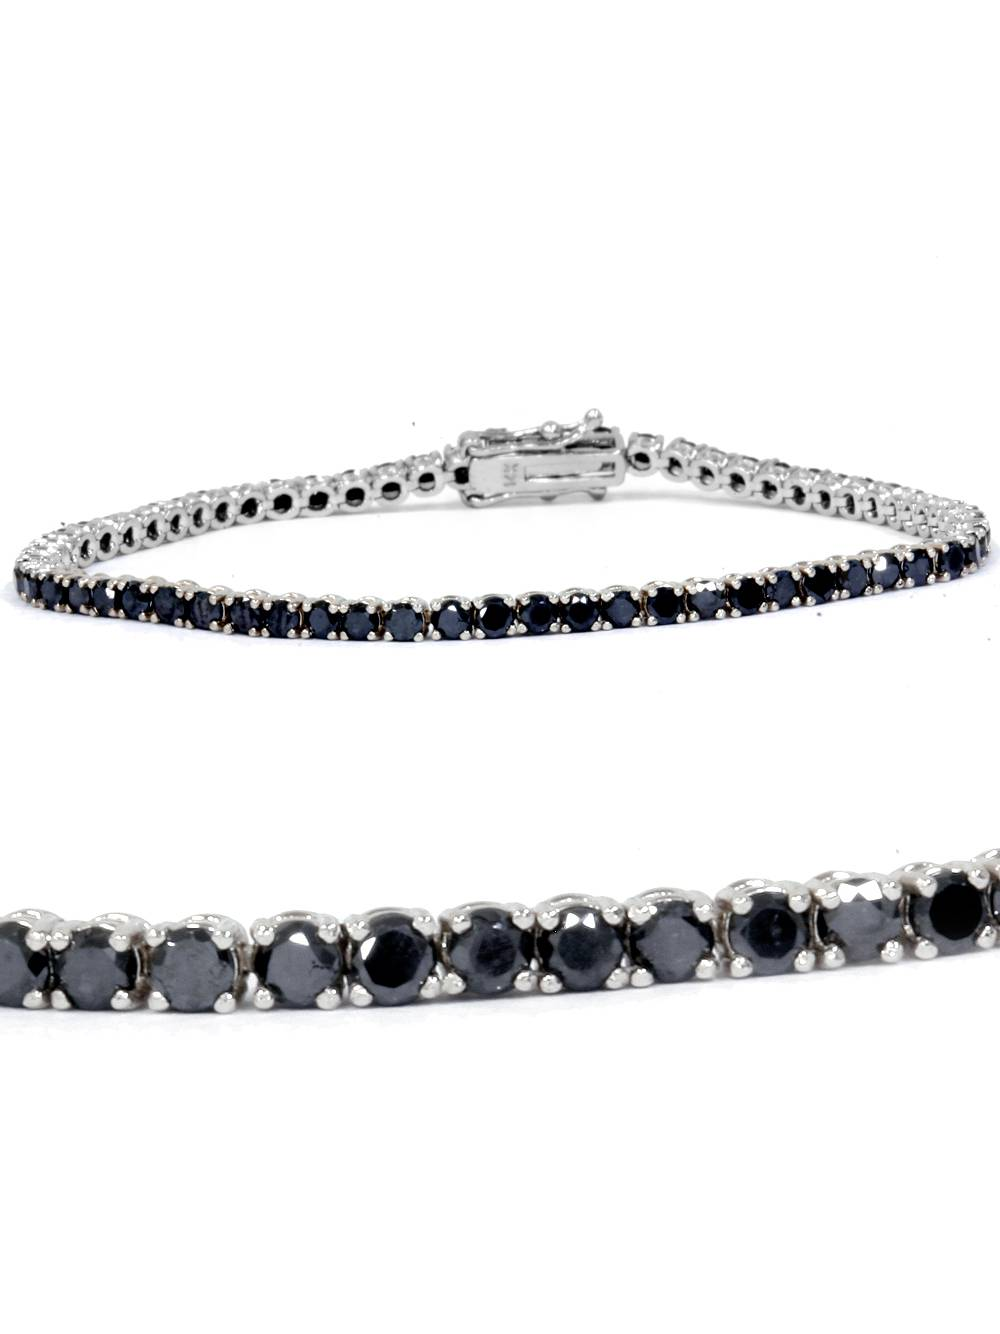 3ct Treated Black Diamond Tennis Bracelet 14K White Gold 7""